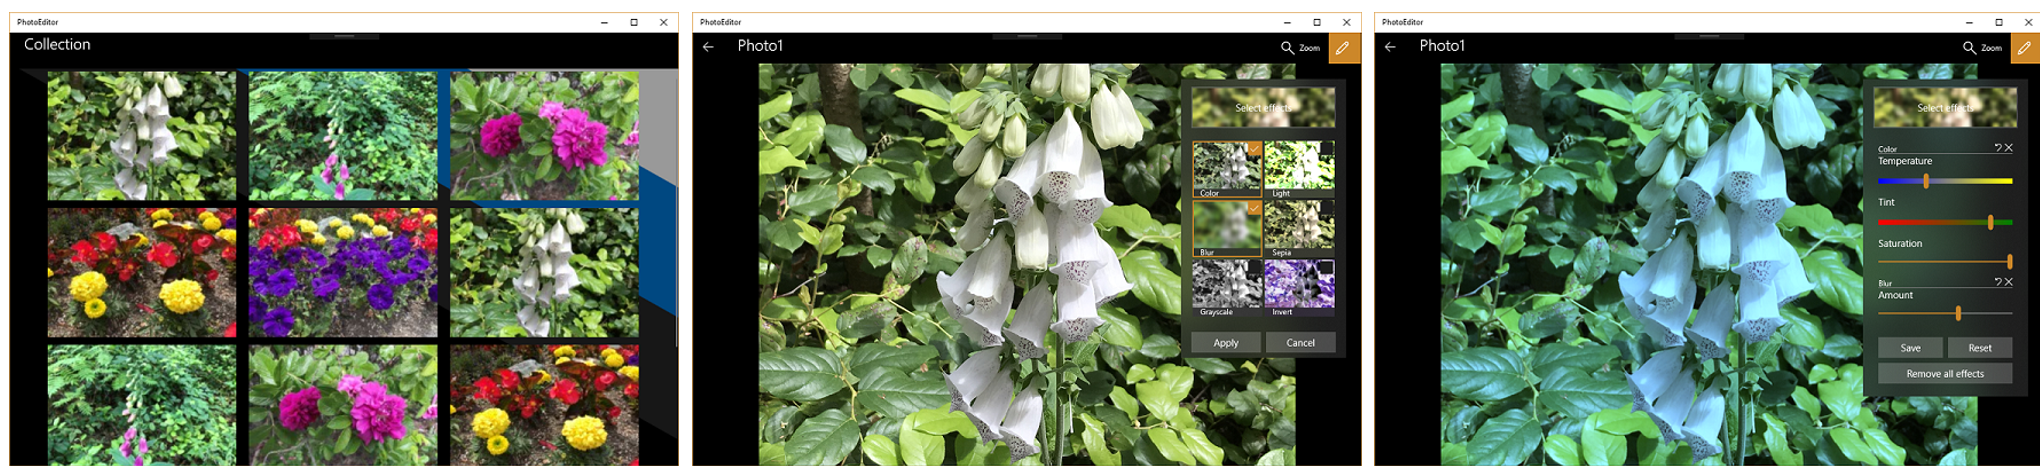 PhotoEditor sample showing the image collection page, editing page, and editing controls